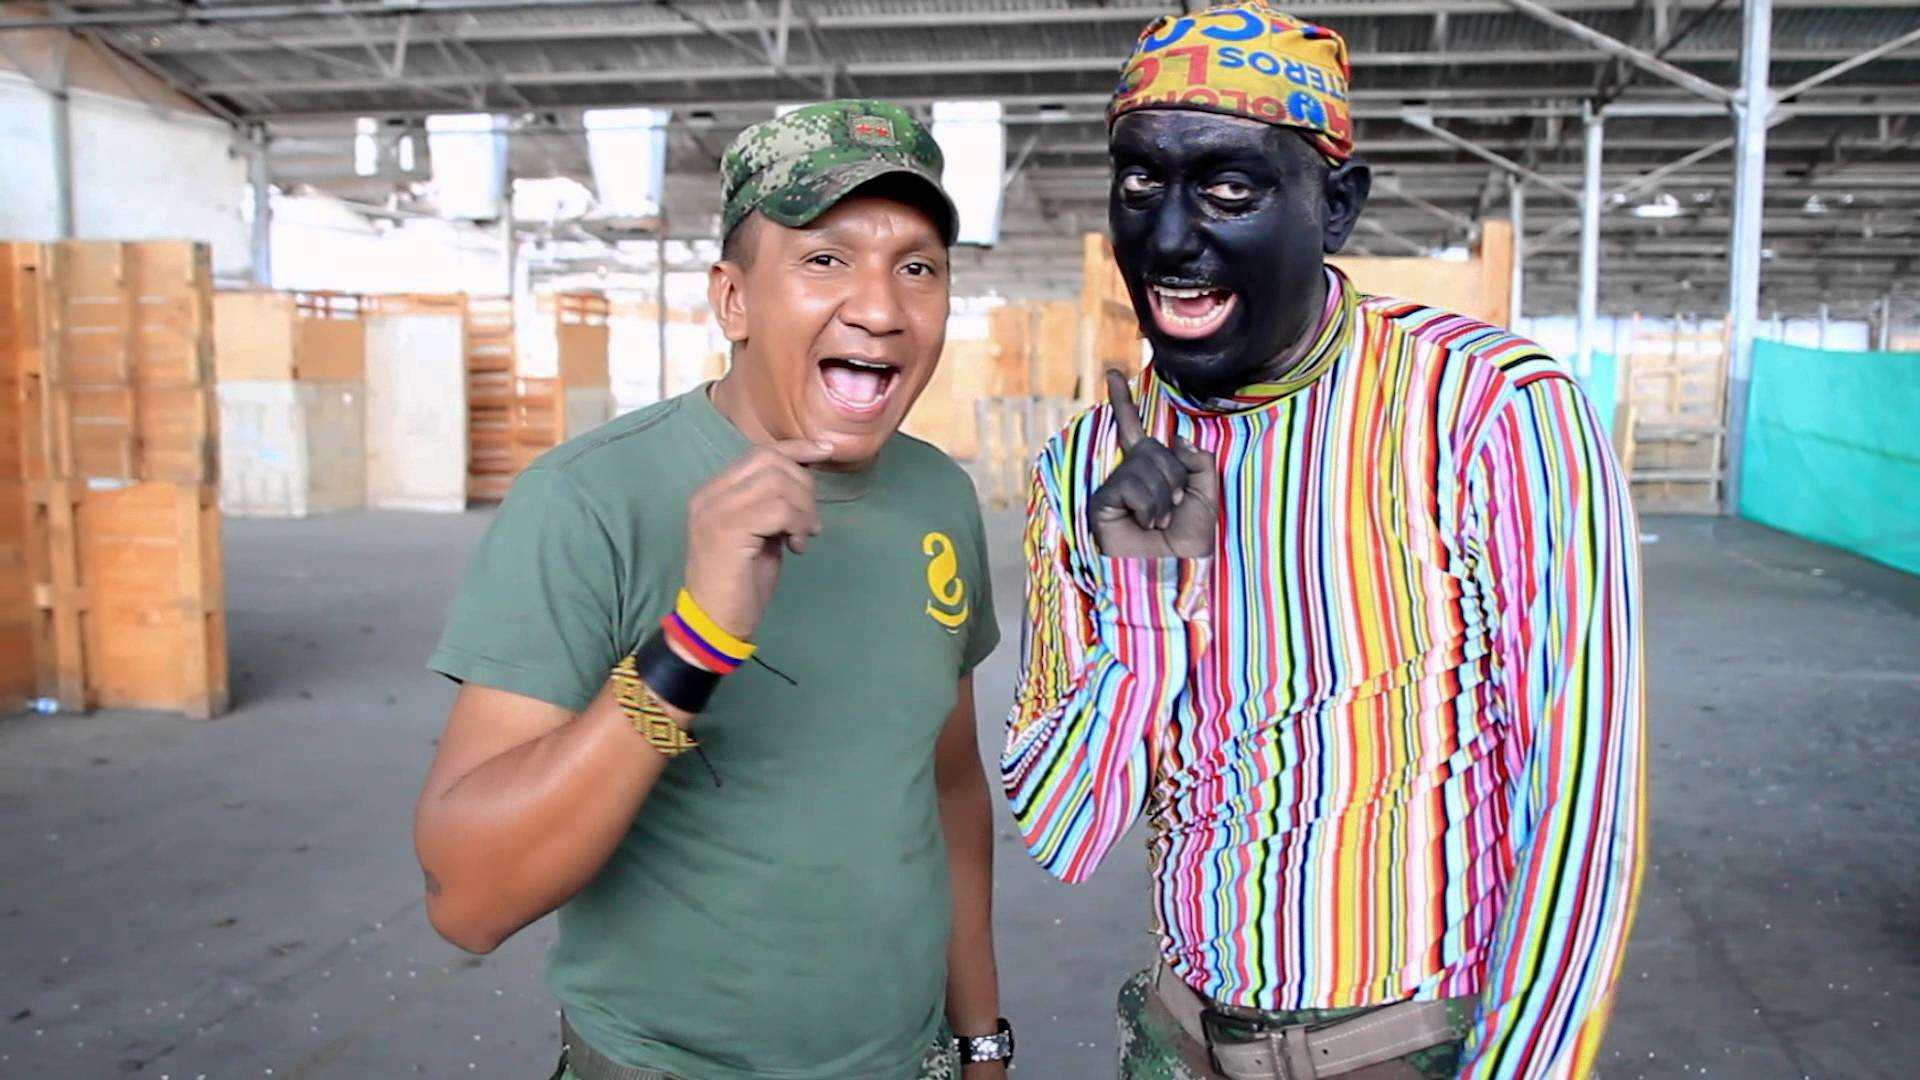 Blackface Character Soldado Micolta Removed From Colombian TV After Protests